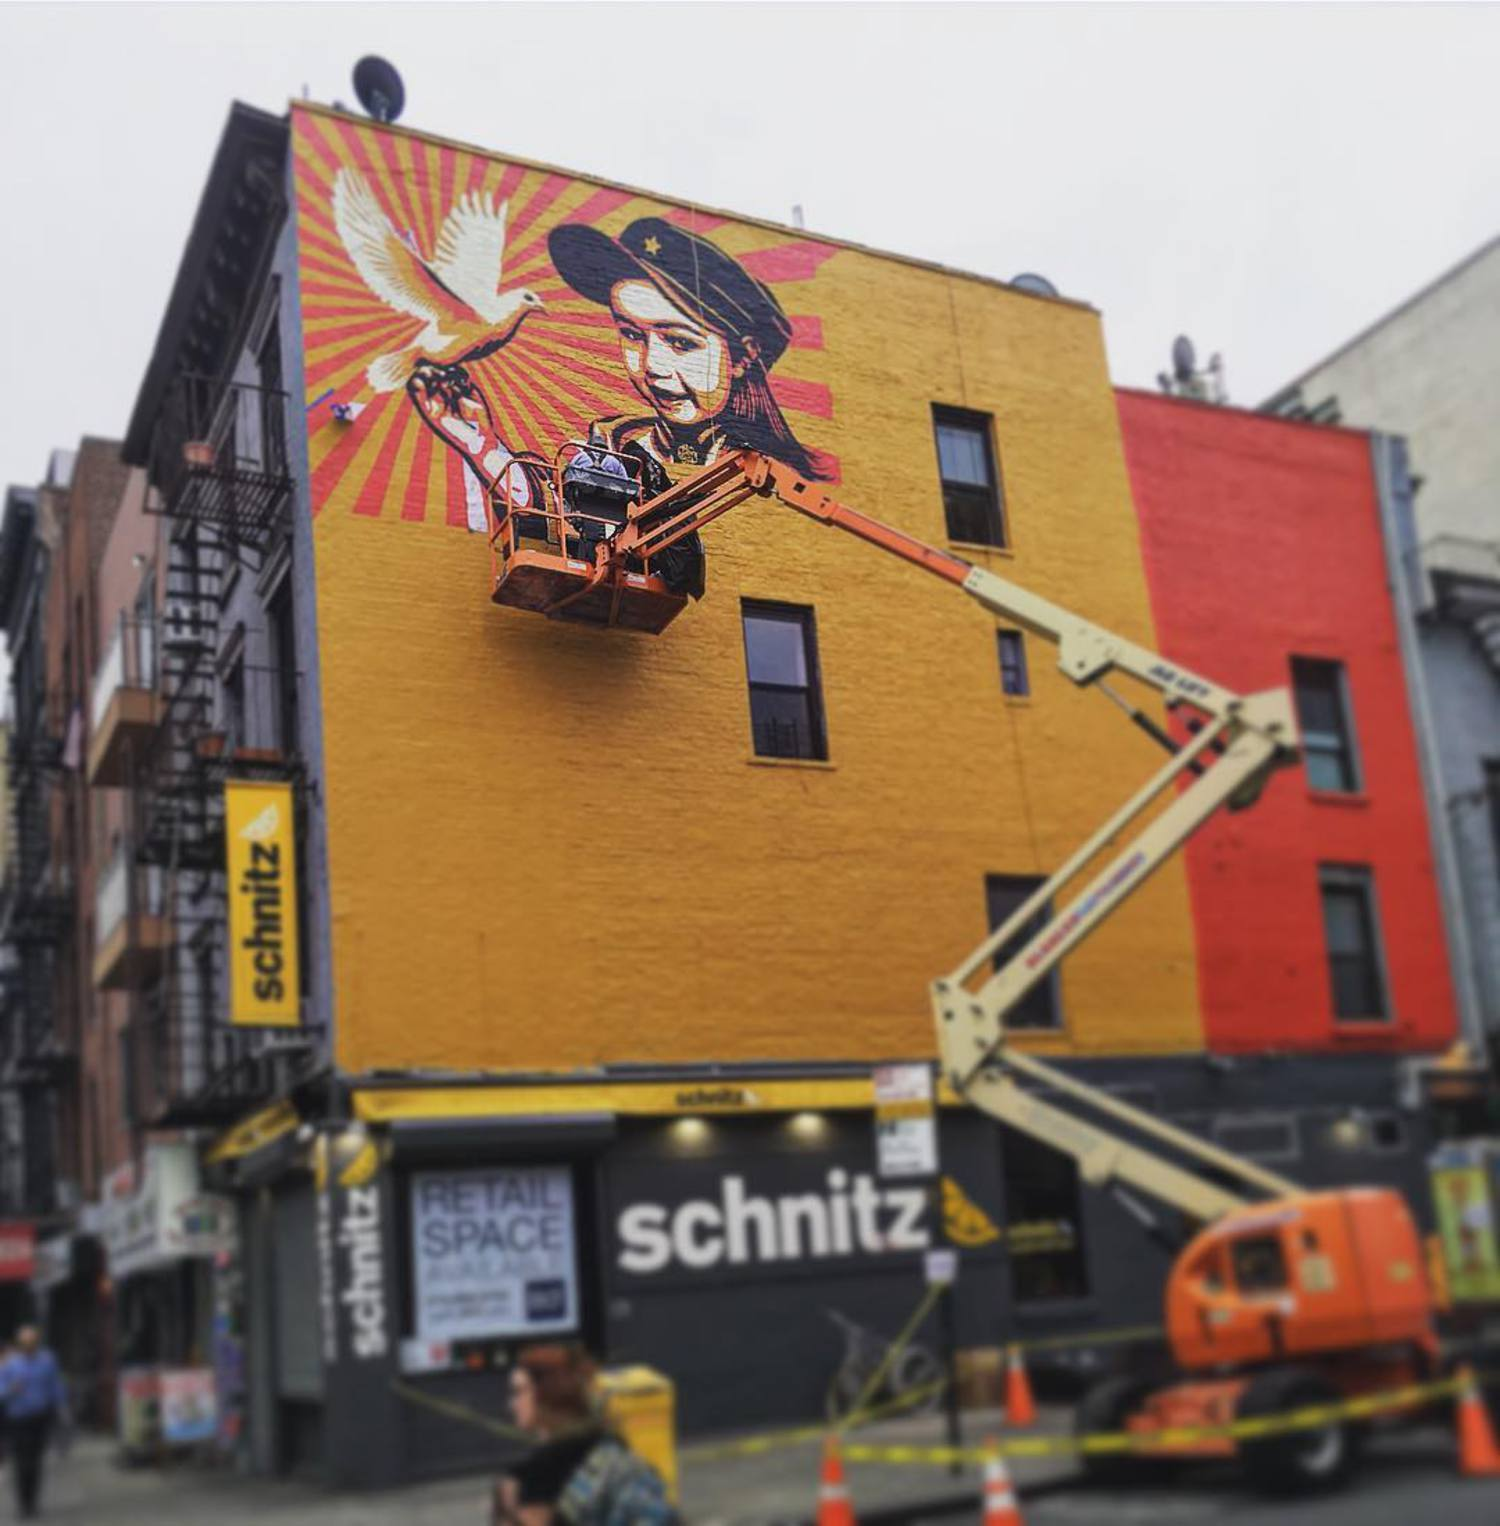 Shepard Fairey at work this evening on 11th Street at 1st Avenue #eastvillage #mural #streetart #shepardfairey #lisaproject #obeygiant #publicart In collaboration with @thelisaprojectnyc